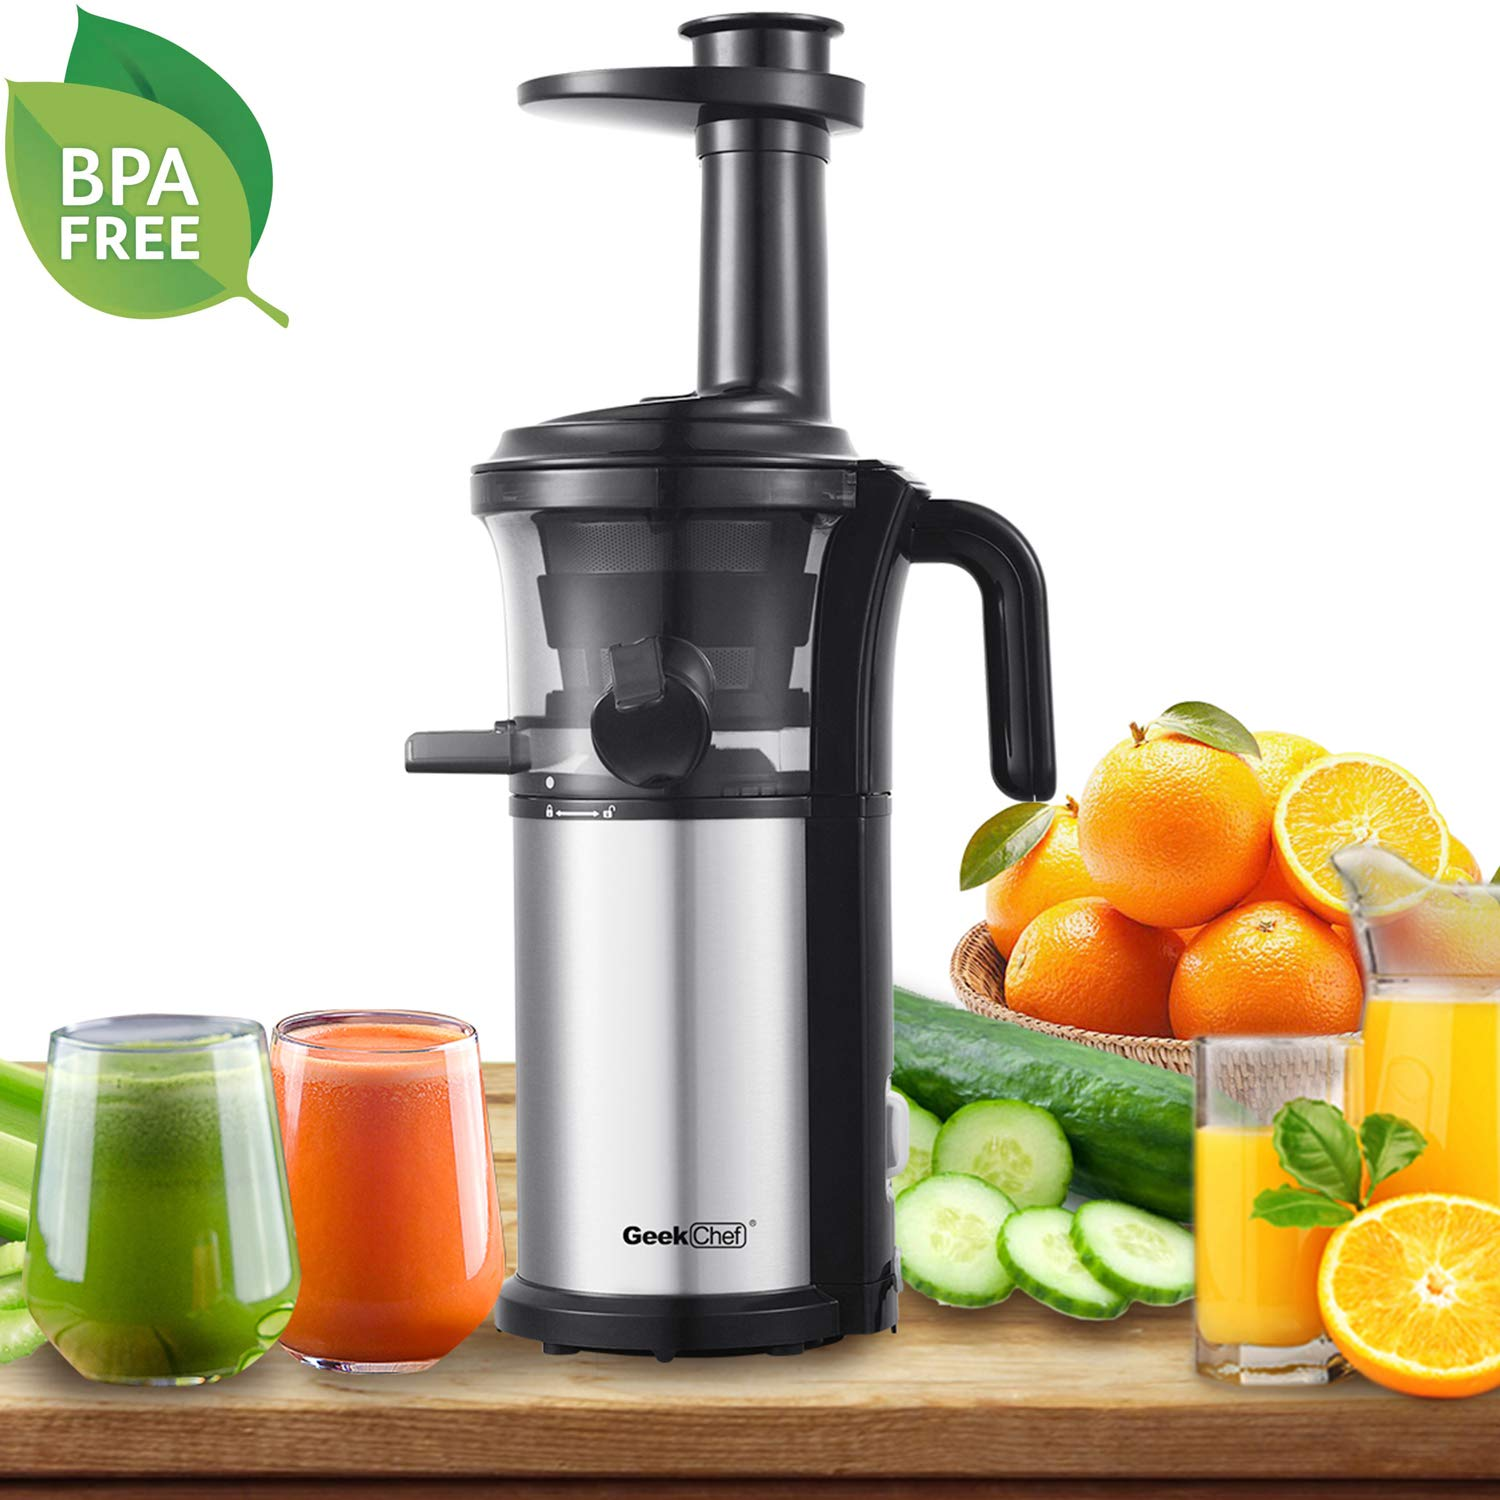 Slow Masticating Juicer Geek Chef Extractor Compact Cold Press Juicer Machine with Portable Handle/Quiet Motor/Reverse Function/Juice Jug and Clean Brush for High Nutrient Fruit & Vegetable Juice by Geek Chef